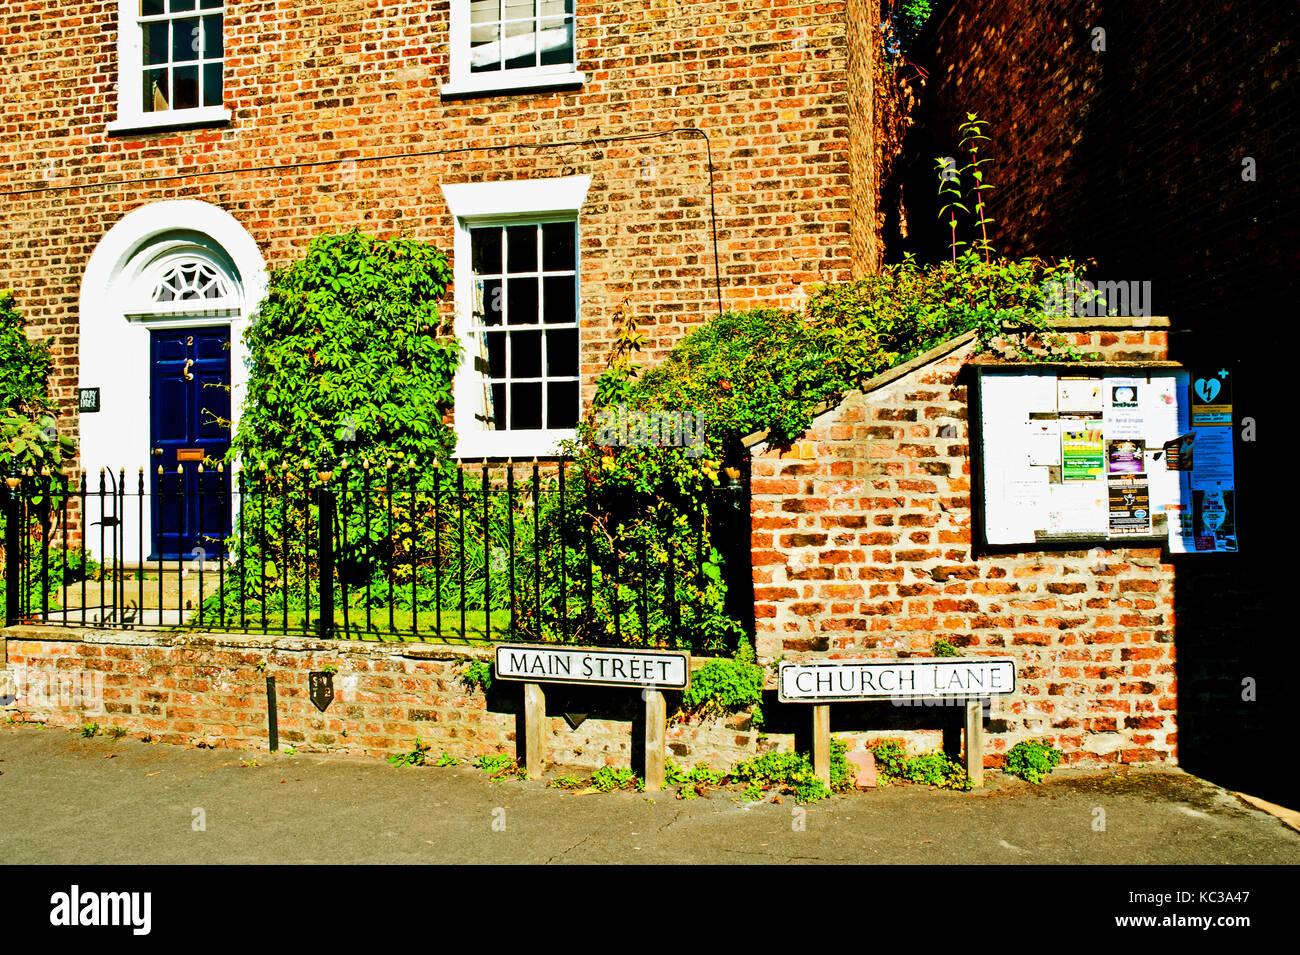 Main Street and church Lane, Nether Poppleton, North Yorkshire - Stock Image